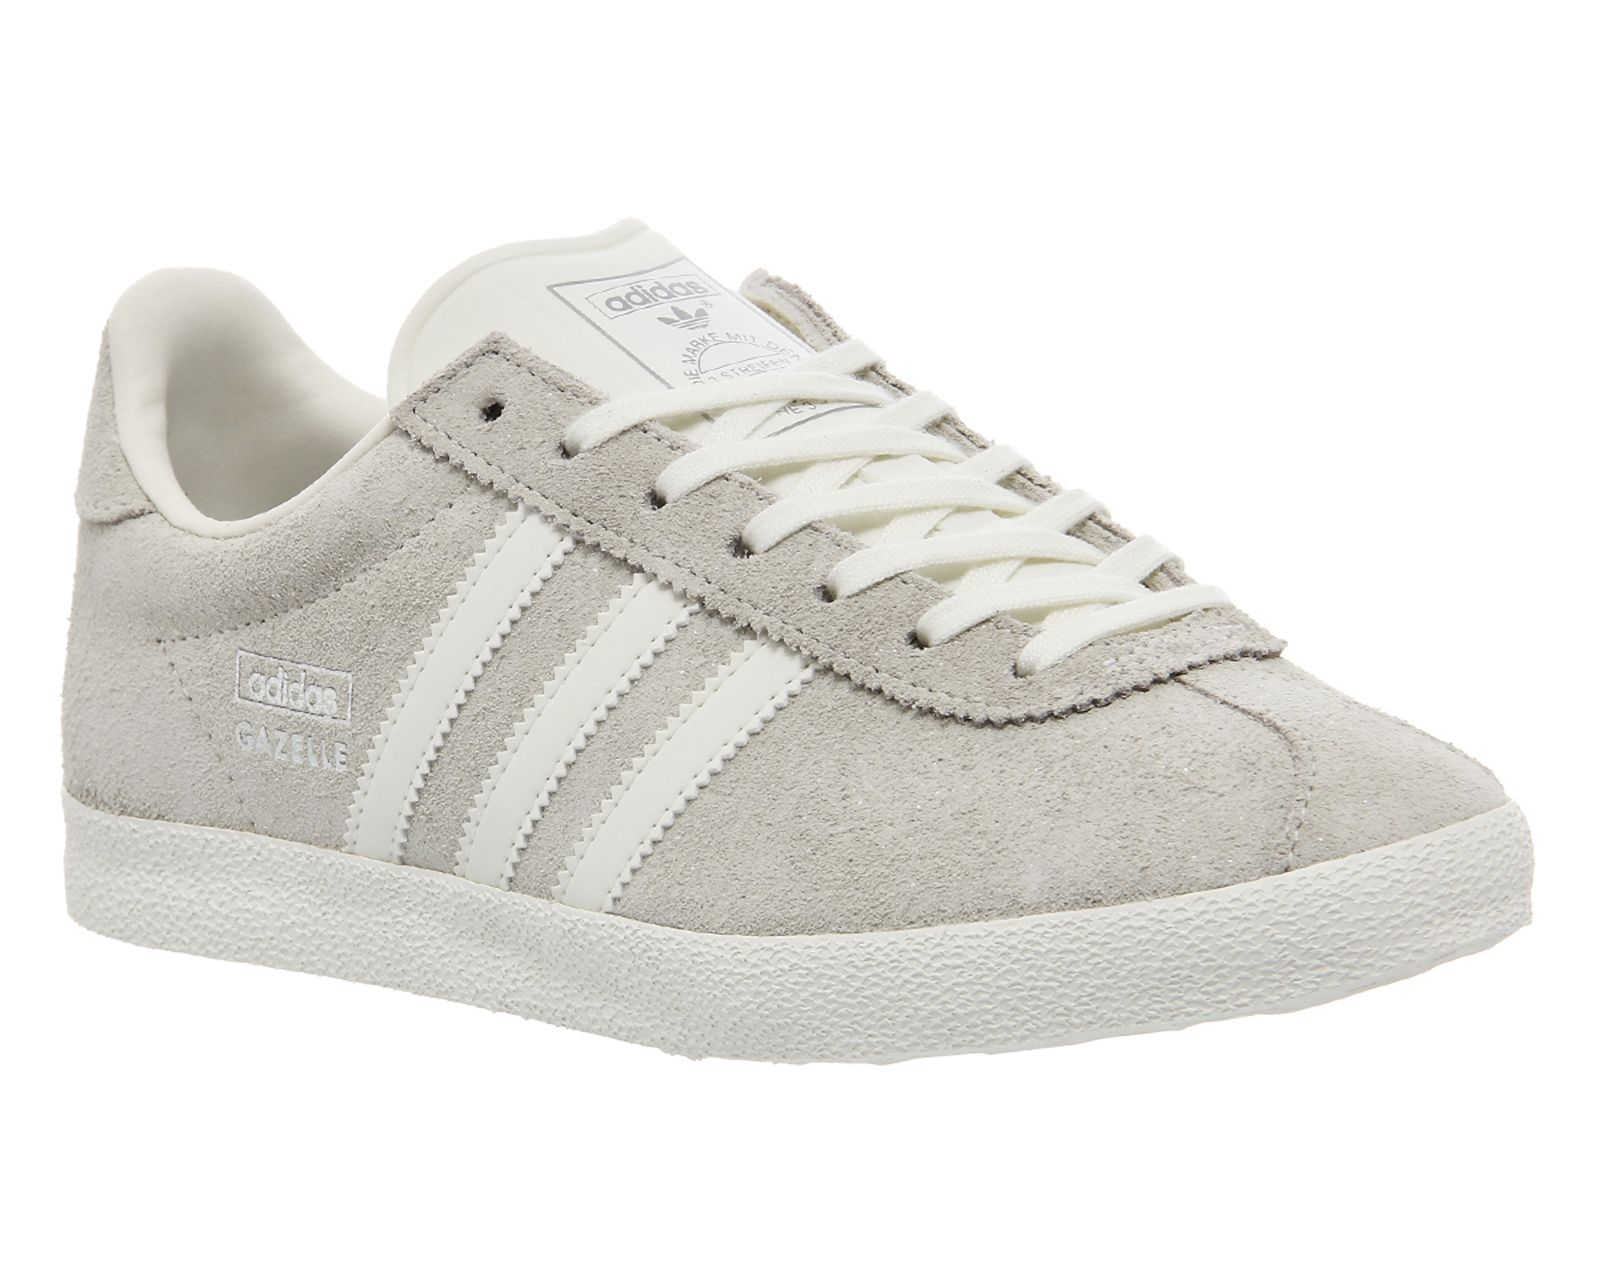 Adidas Gazelle Originals White Silver shoes